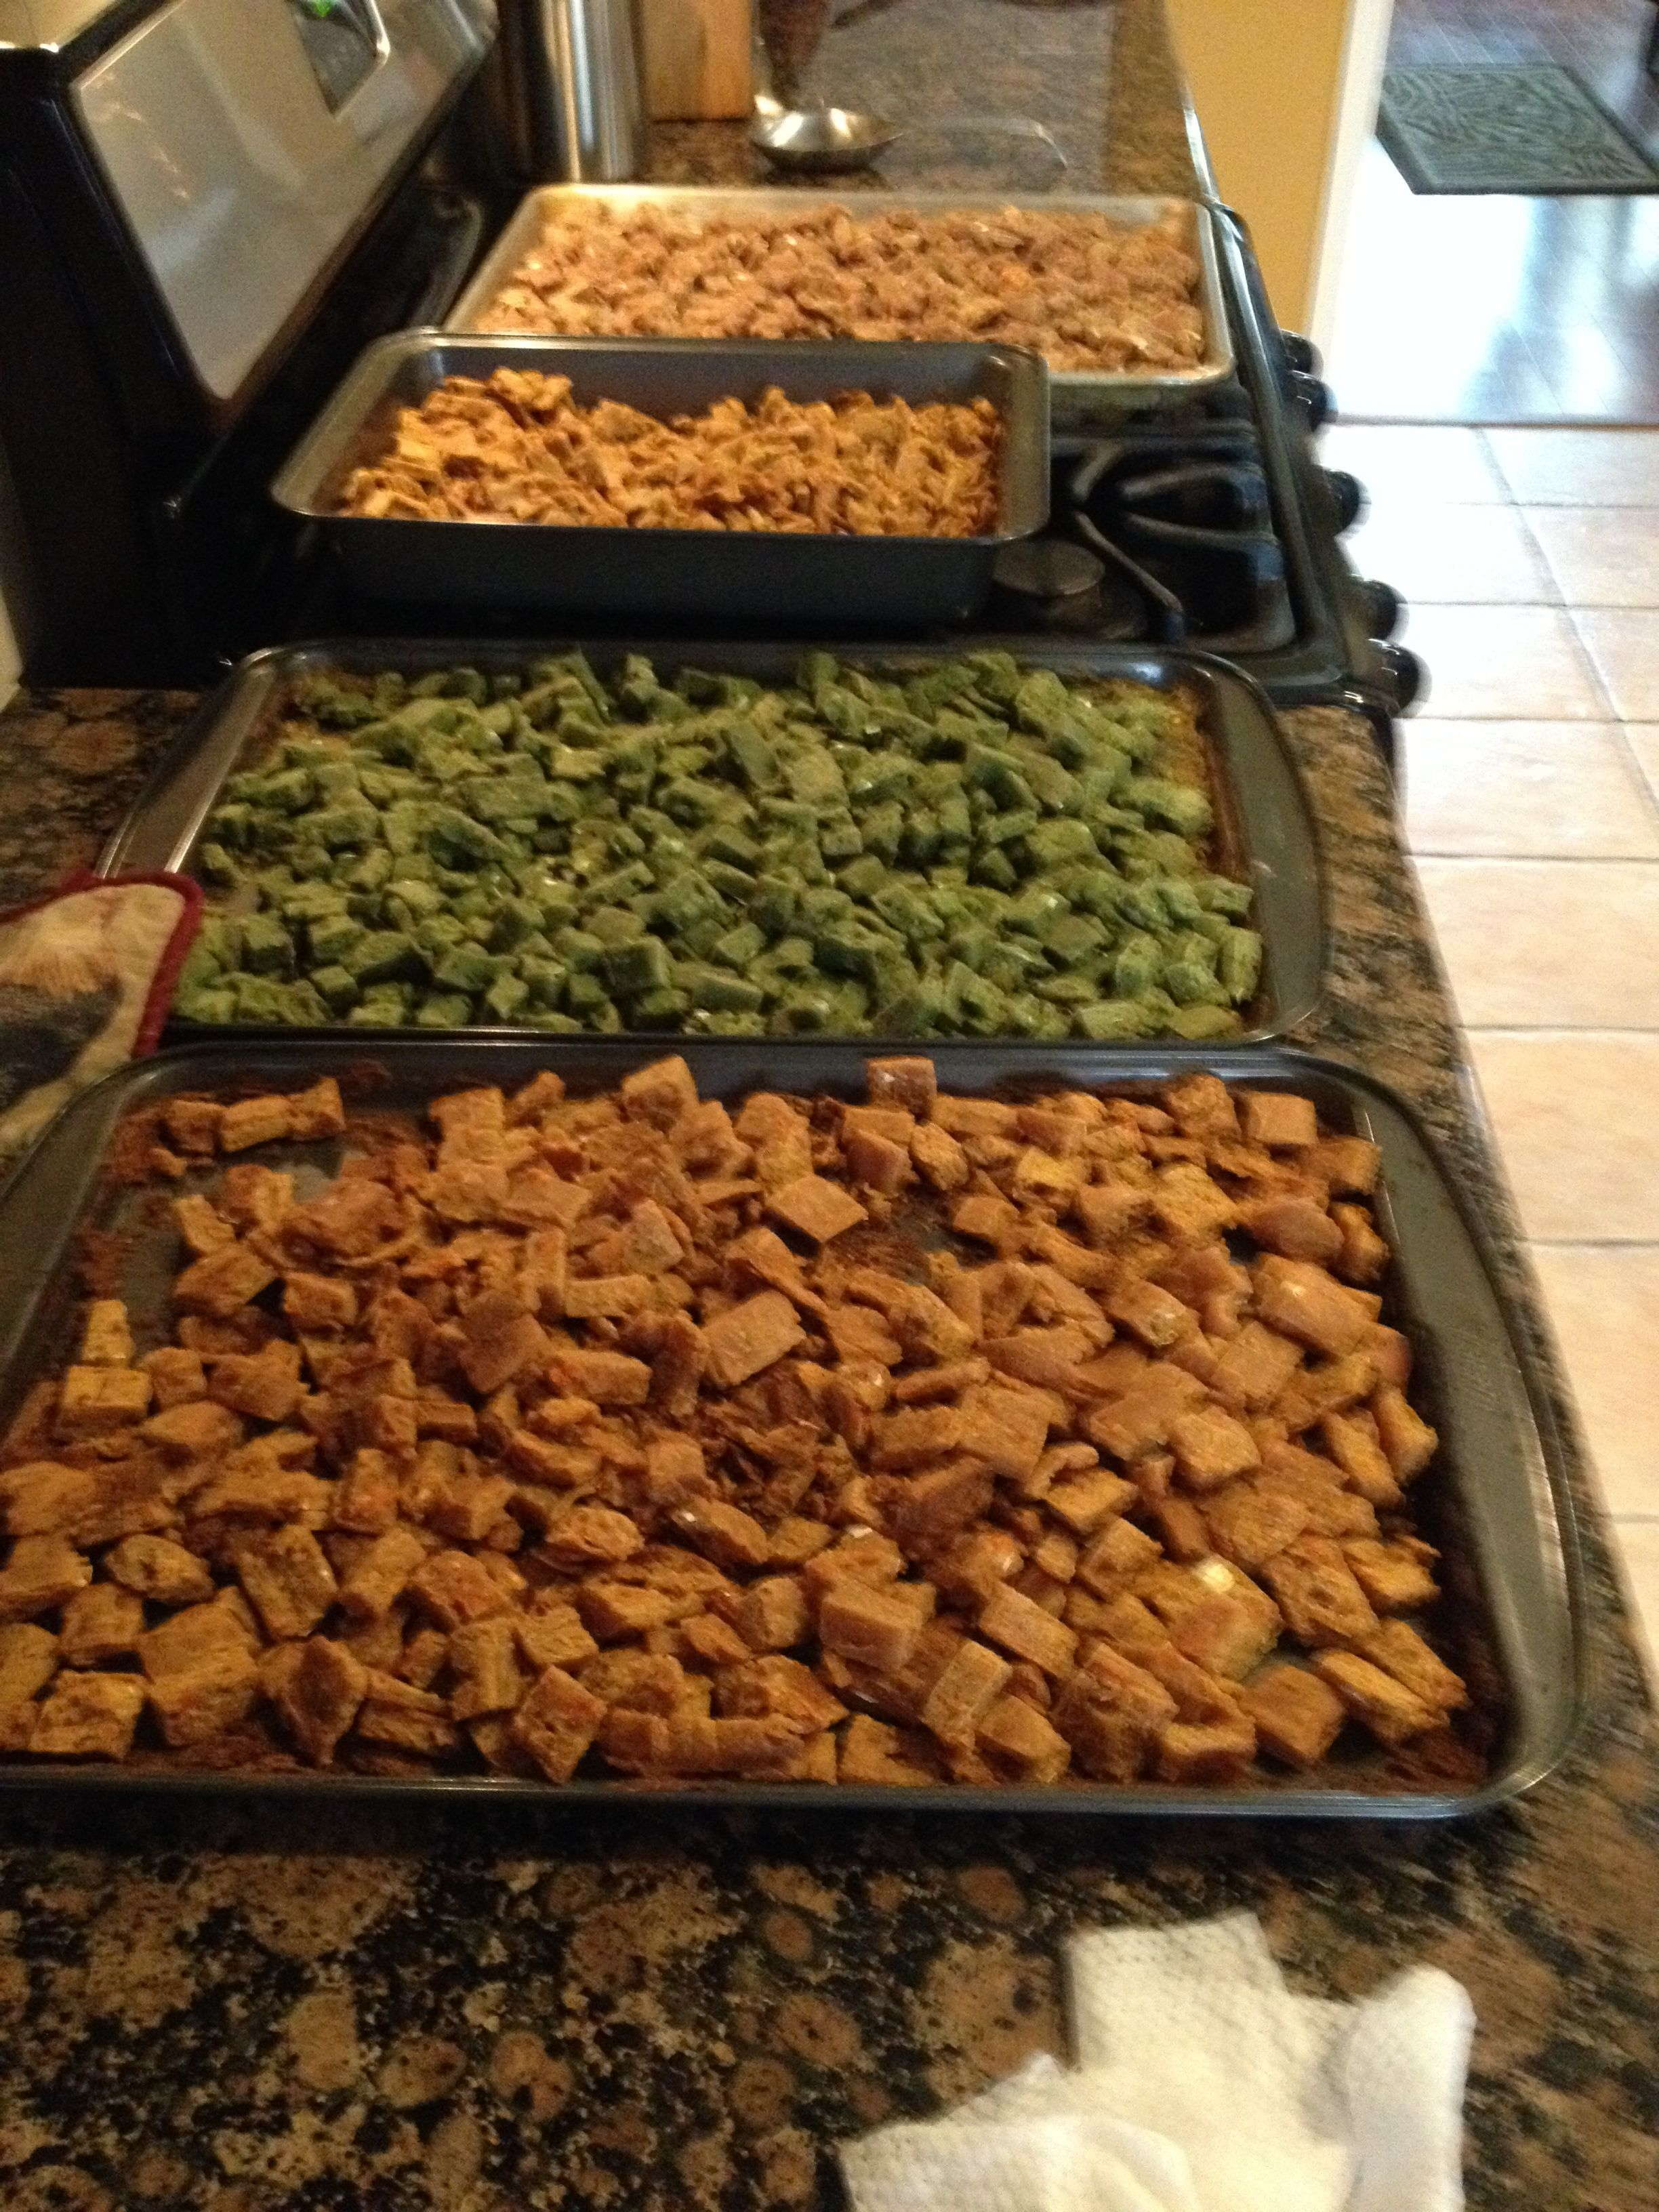 Homemade Dry Dogfood Made My Furbabies Some Homemade Dry Dog Food